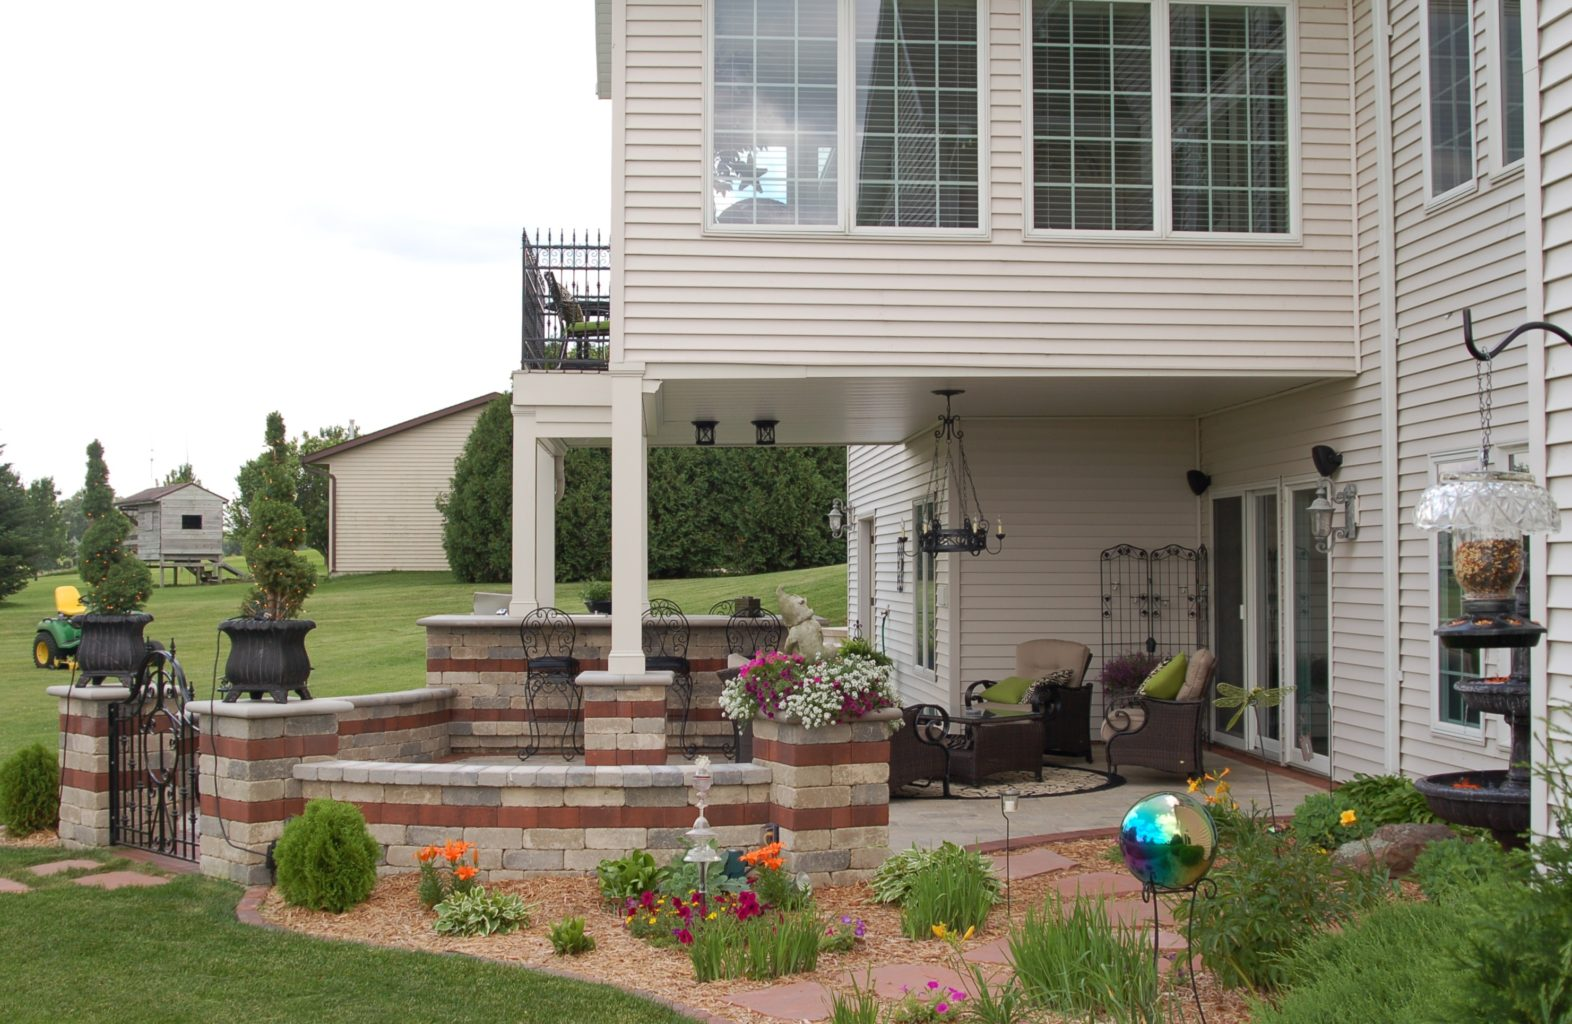 Underdeck patio with landscaping